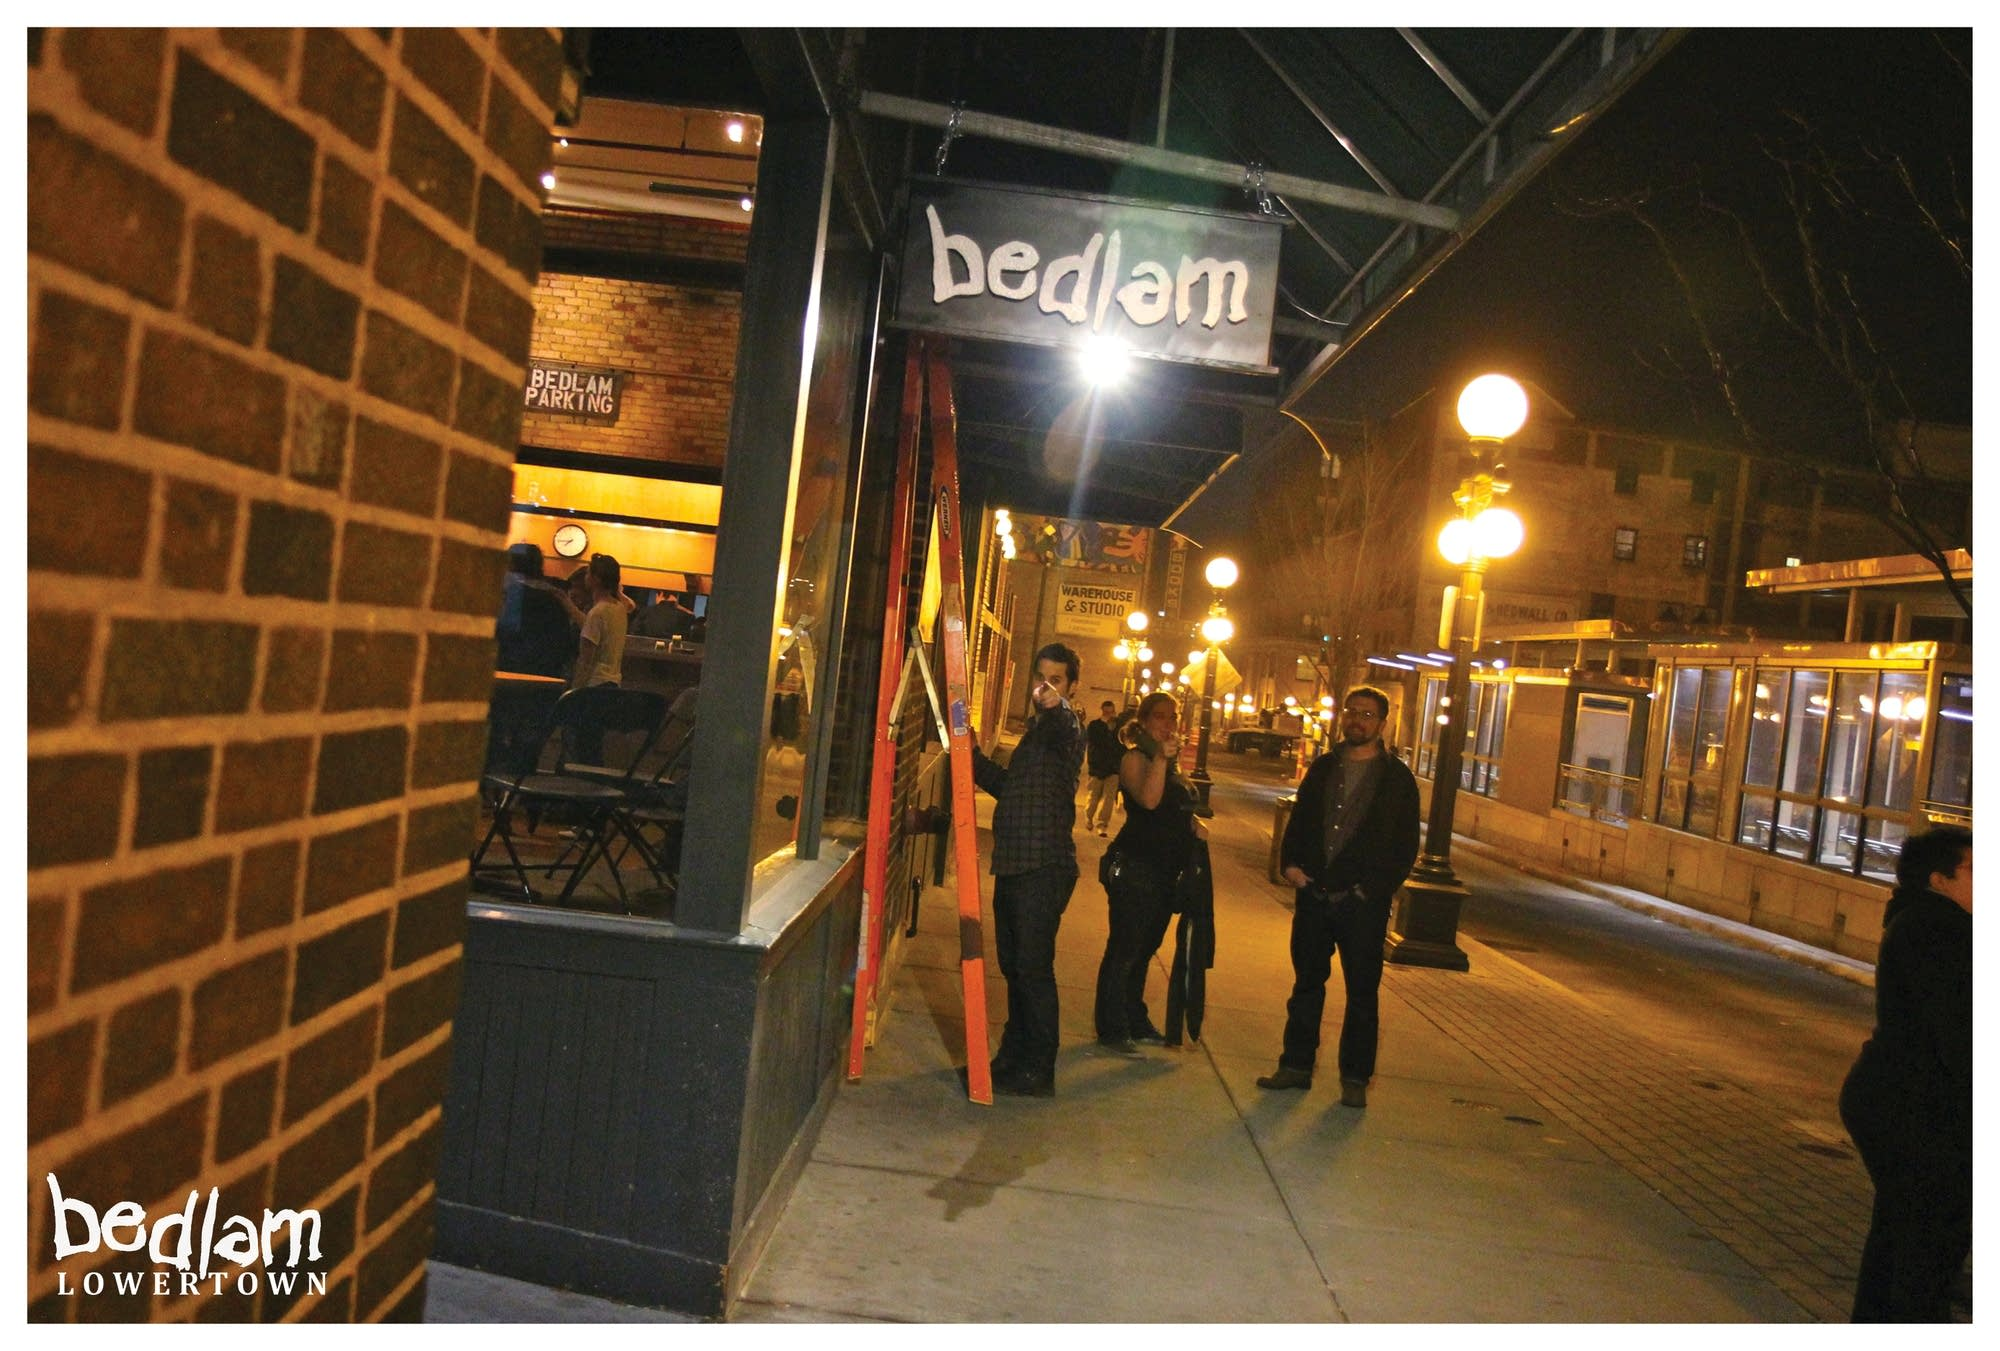 bedlam theatre, lowertown